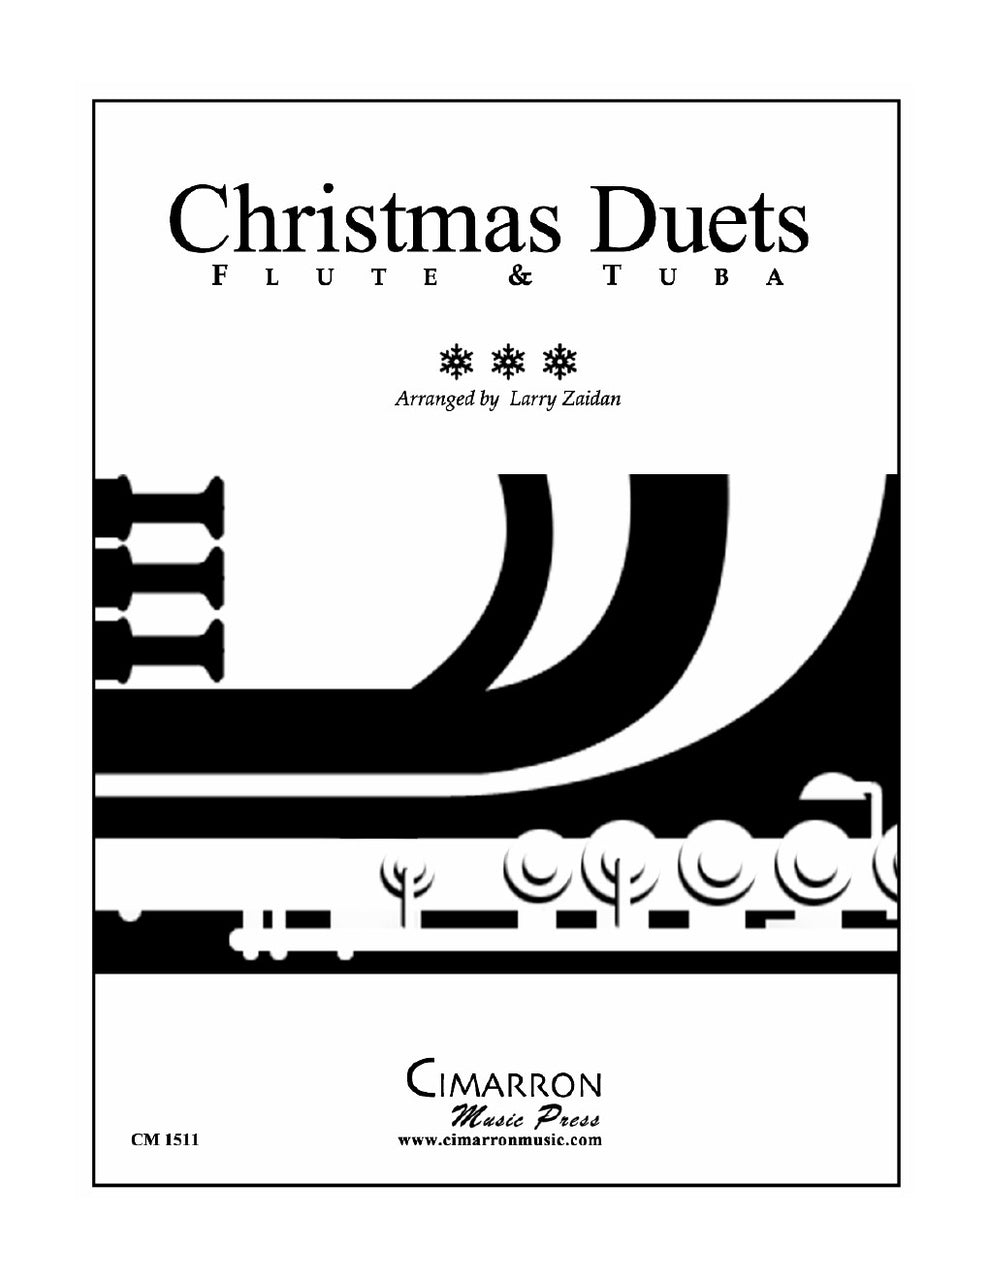 Christmas Duets - Flute and Tuba